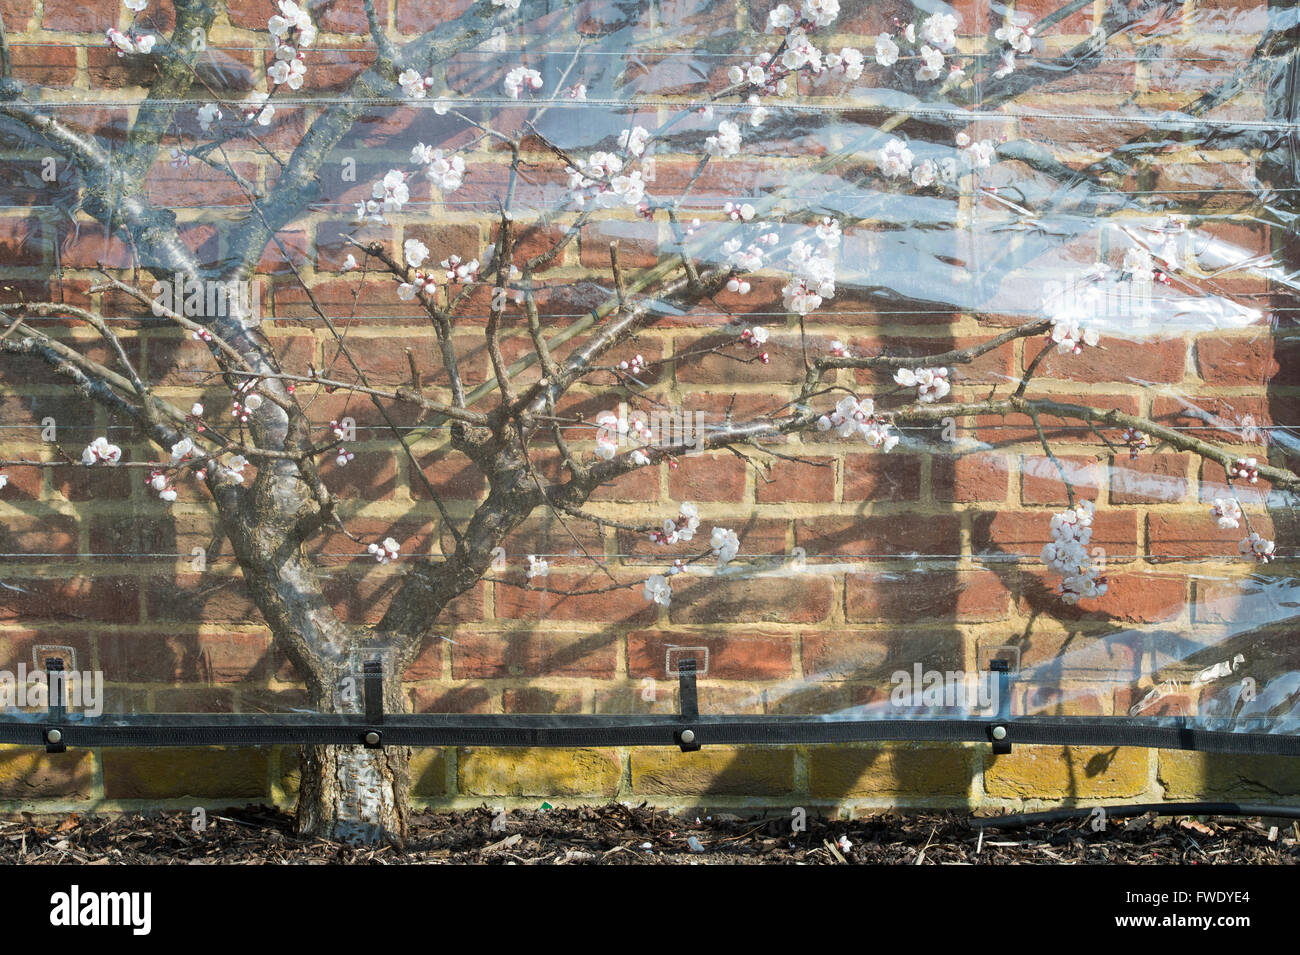 Plastic screen protecting Apricot Delicot Flavorcot blossom at RHS Wisley Gardens. Surrey, UK - Stock Image